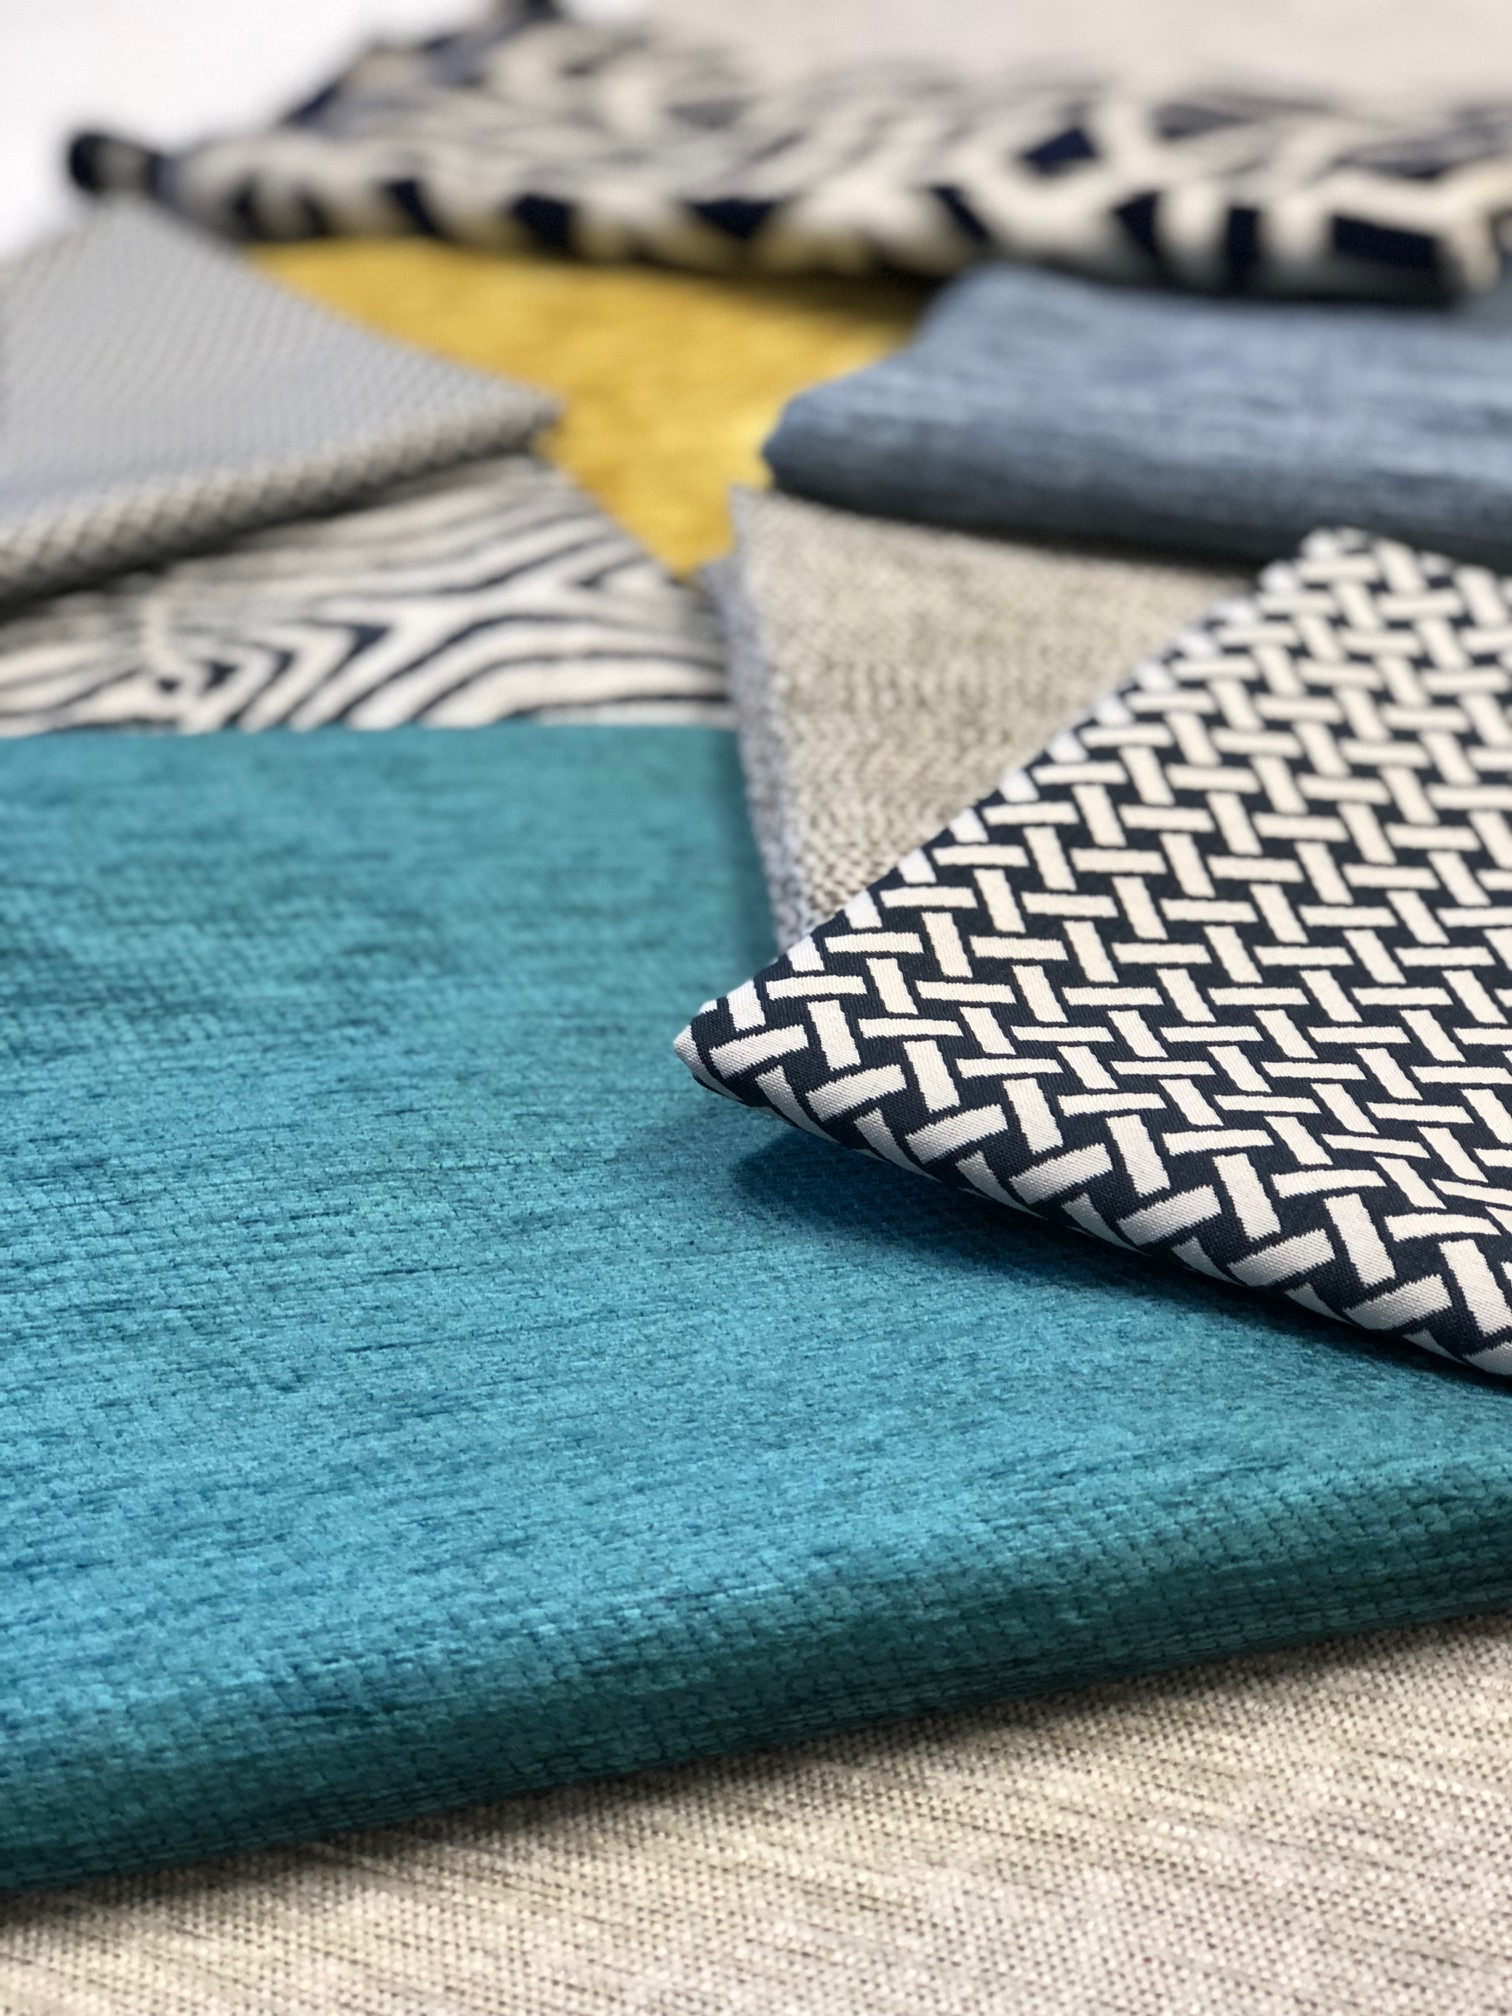 HotelHome Easy Rooms Refresh Fabric Samples